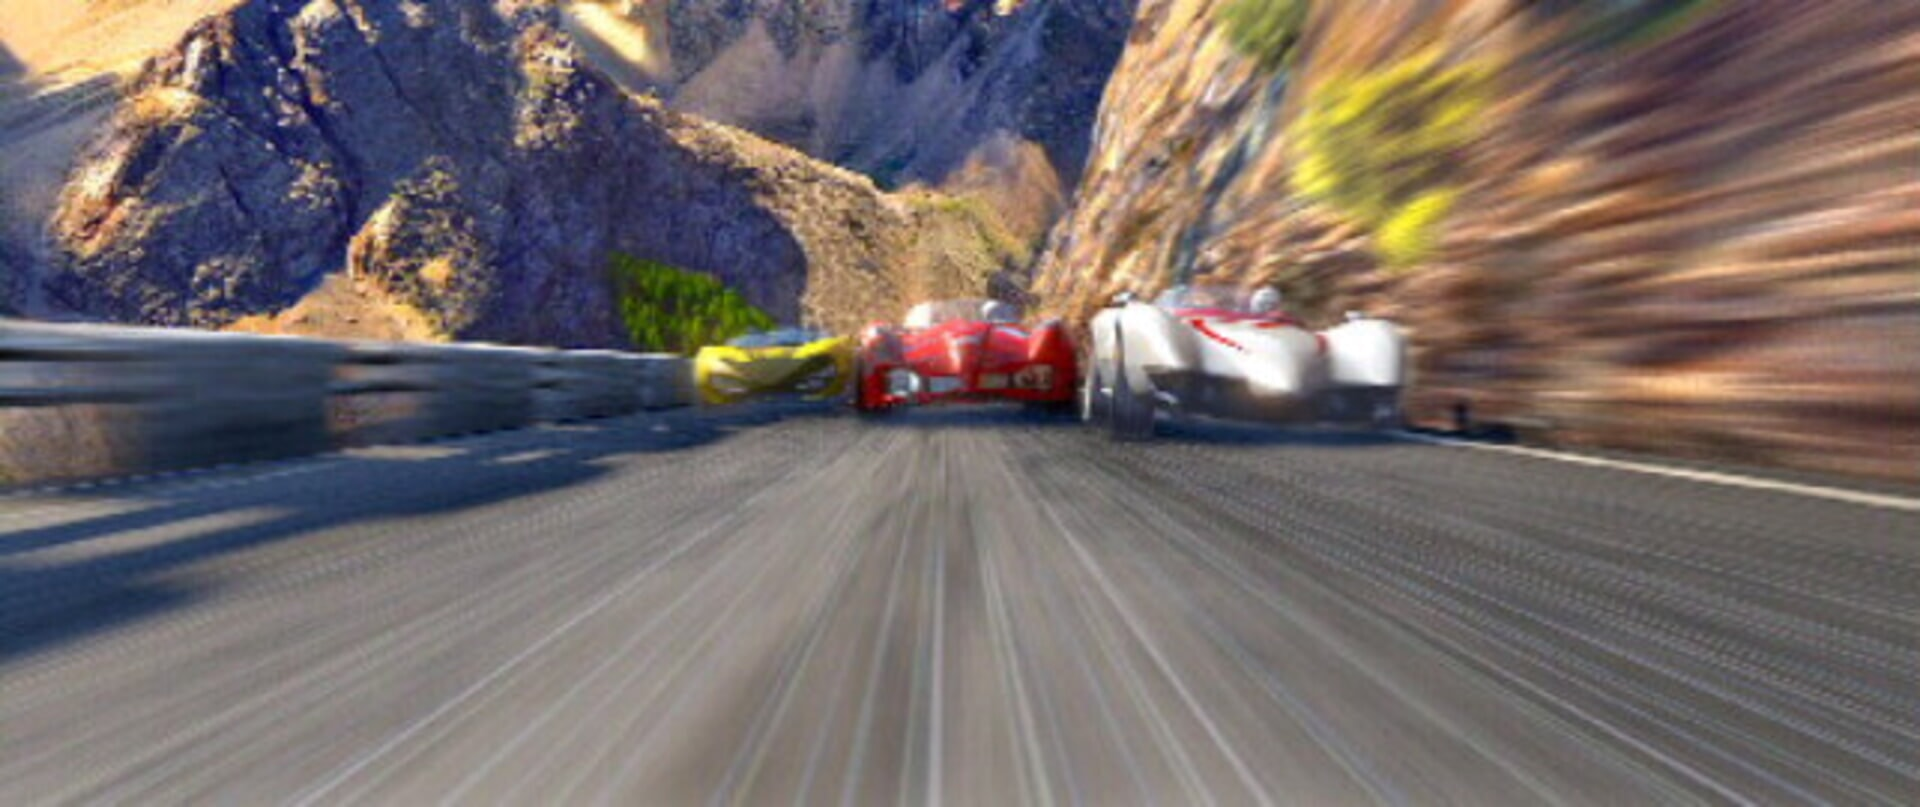 Speed Racer - Image 19